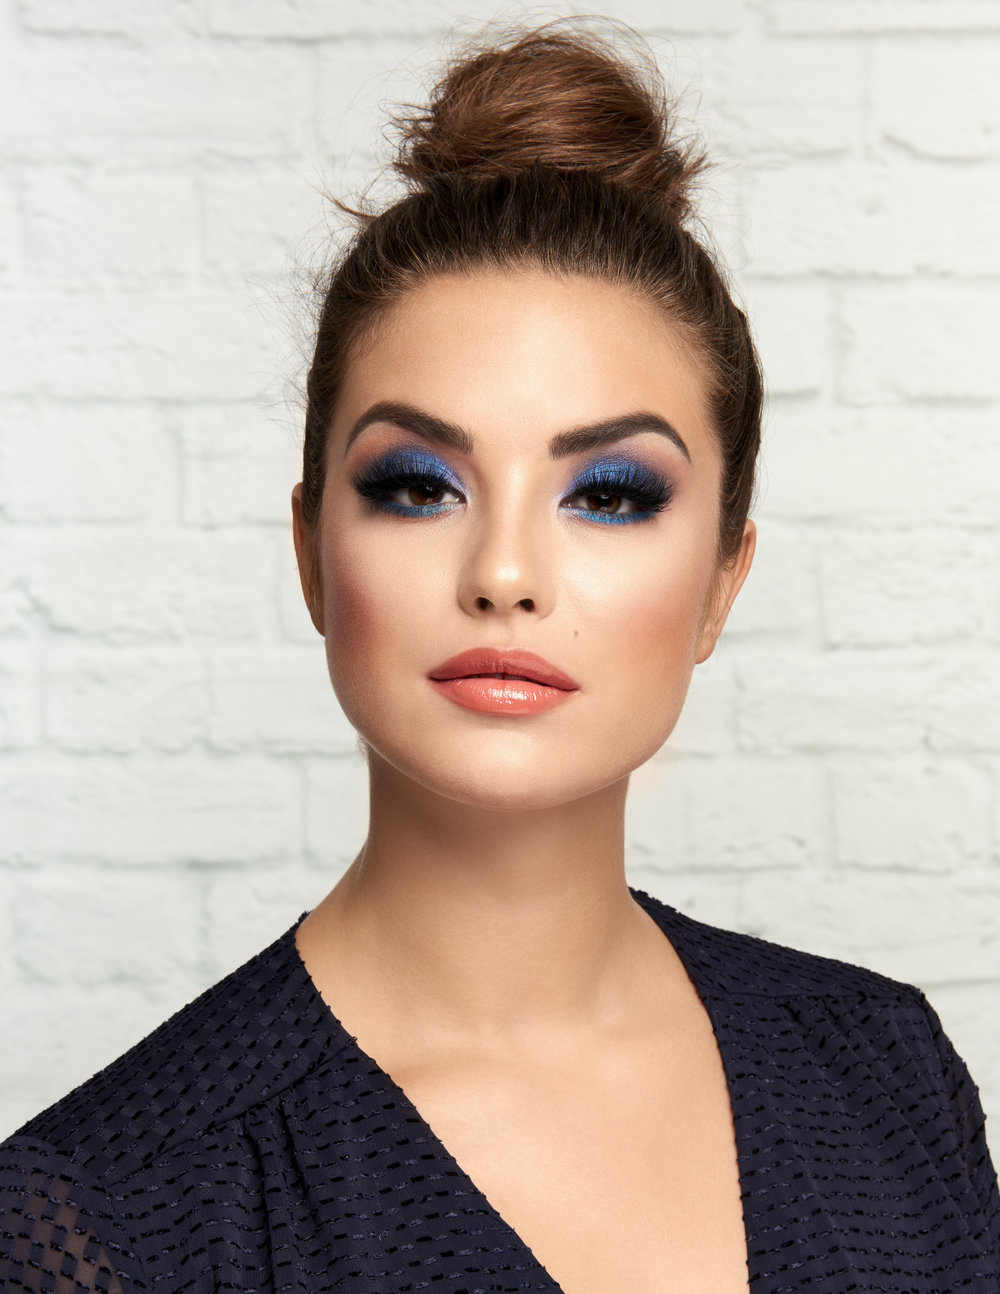 COVERGIRL_BLUEEYESHADOW_LOOK2_071_retouched.jpg